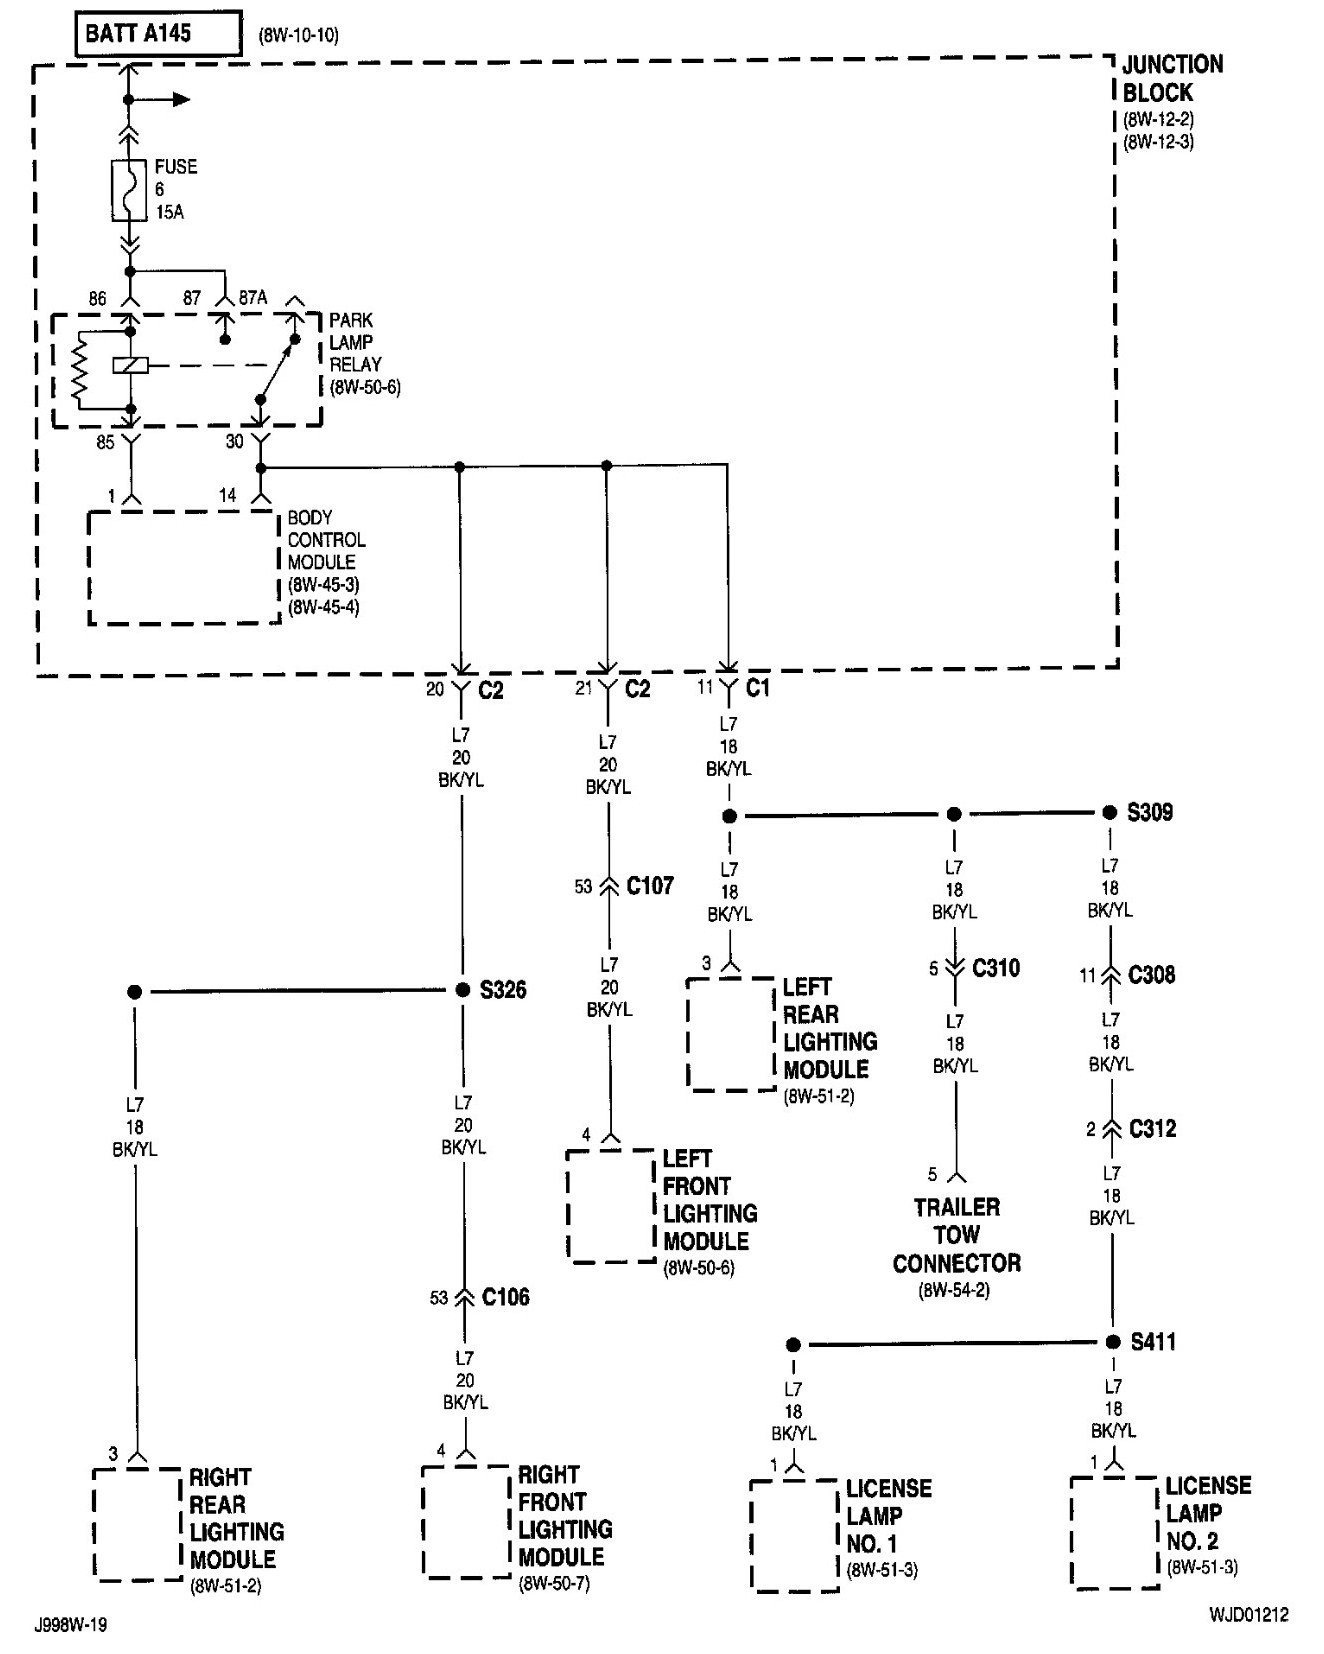 Jeep Liberty Trailer Wiring Diagram - wiring diagram boards-person -  boards-person.eugeniovazzano.it | 2005 Jeep Wiring Diagram |  | Eugenio Vazzano